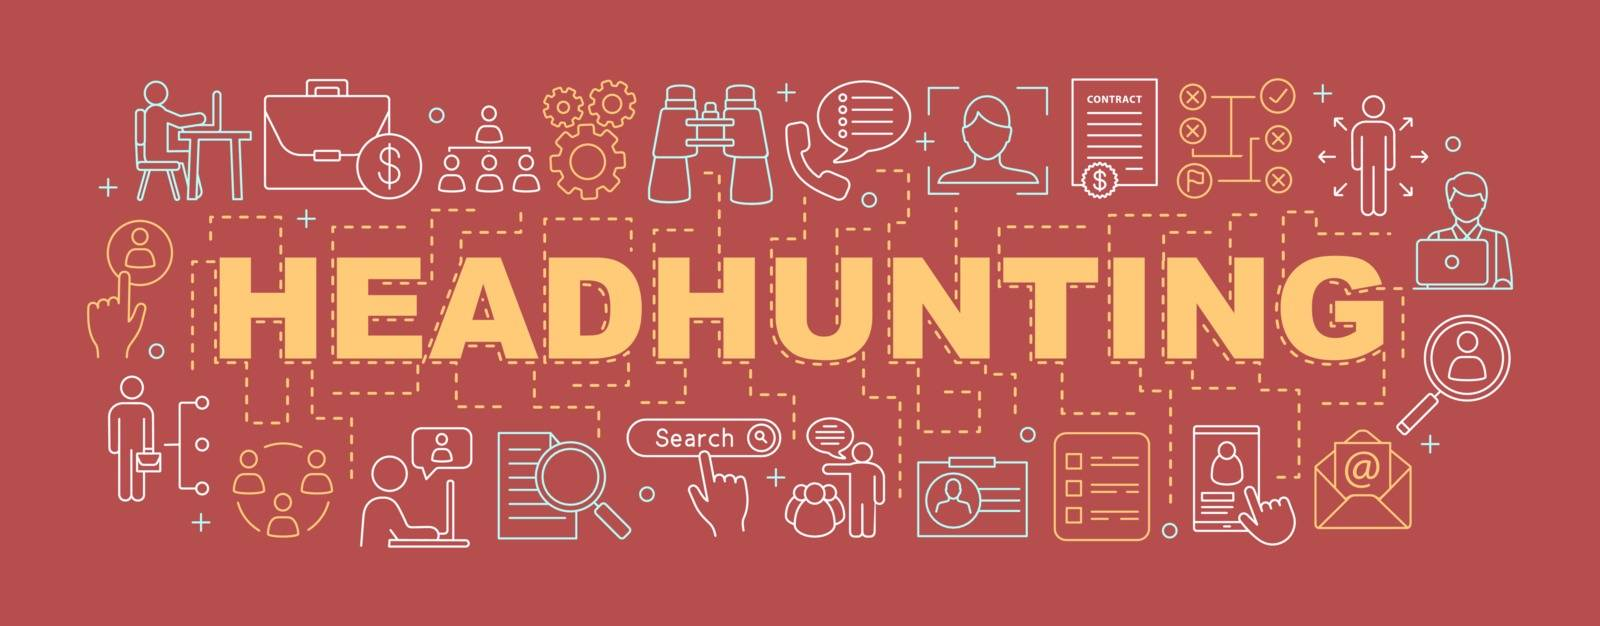 Headhunting concepts banner. Employment. HR mangement. Presentation, website. Staff hiring. Recruitment. Isolated lettering typography idea with linear icons. Vector outline illustration